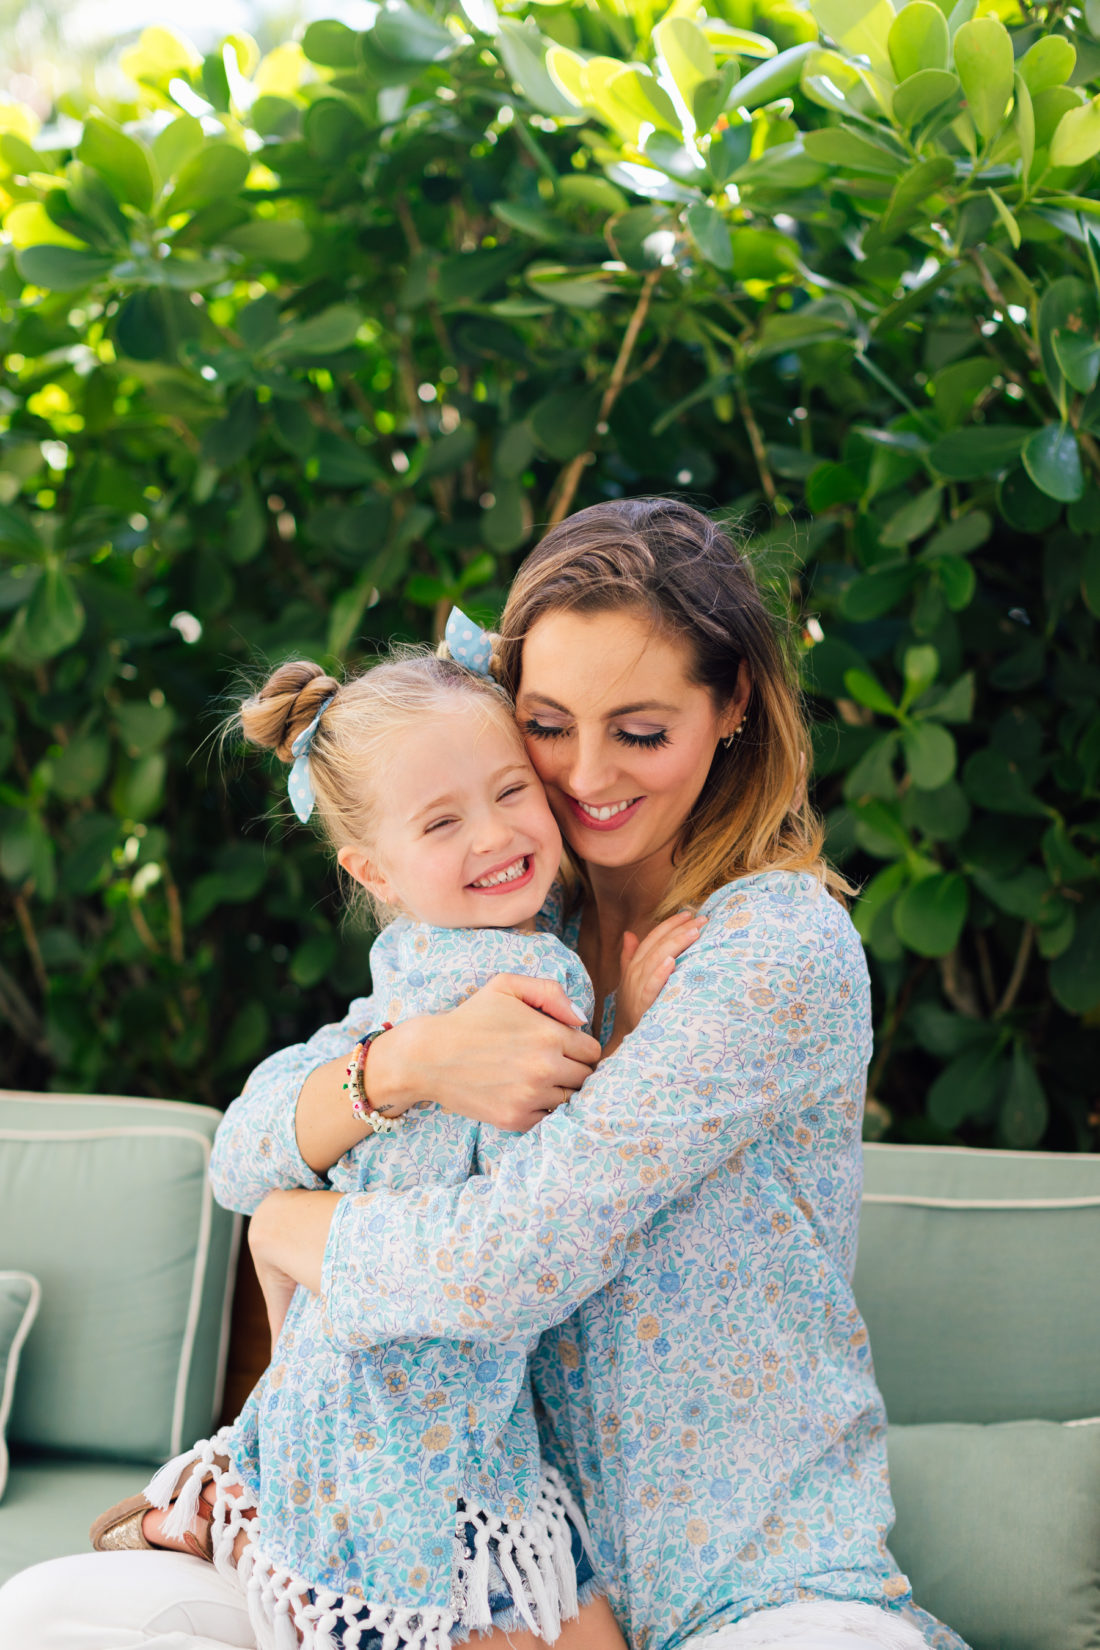 Eva Amurri Martino and Marlowe Martino wear matching masala baby tunics in a blue floral print from their limited capsule collection for the brand.